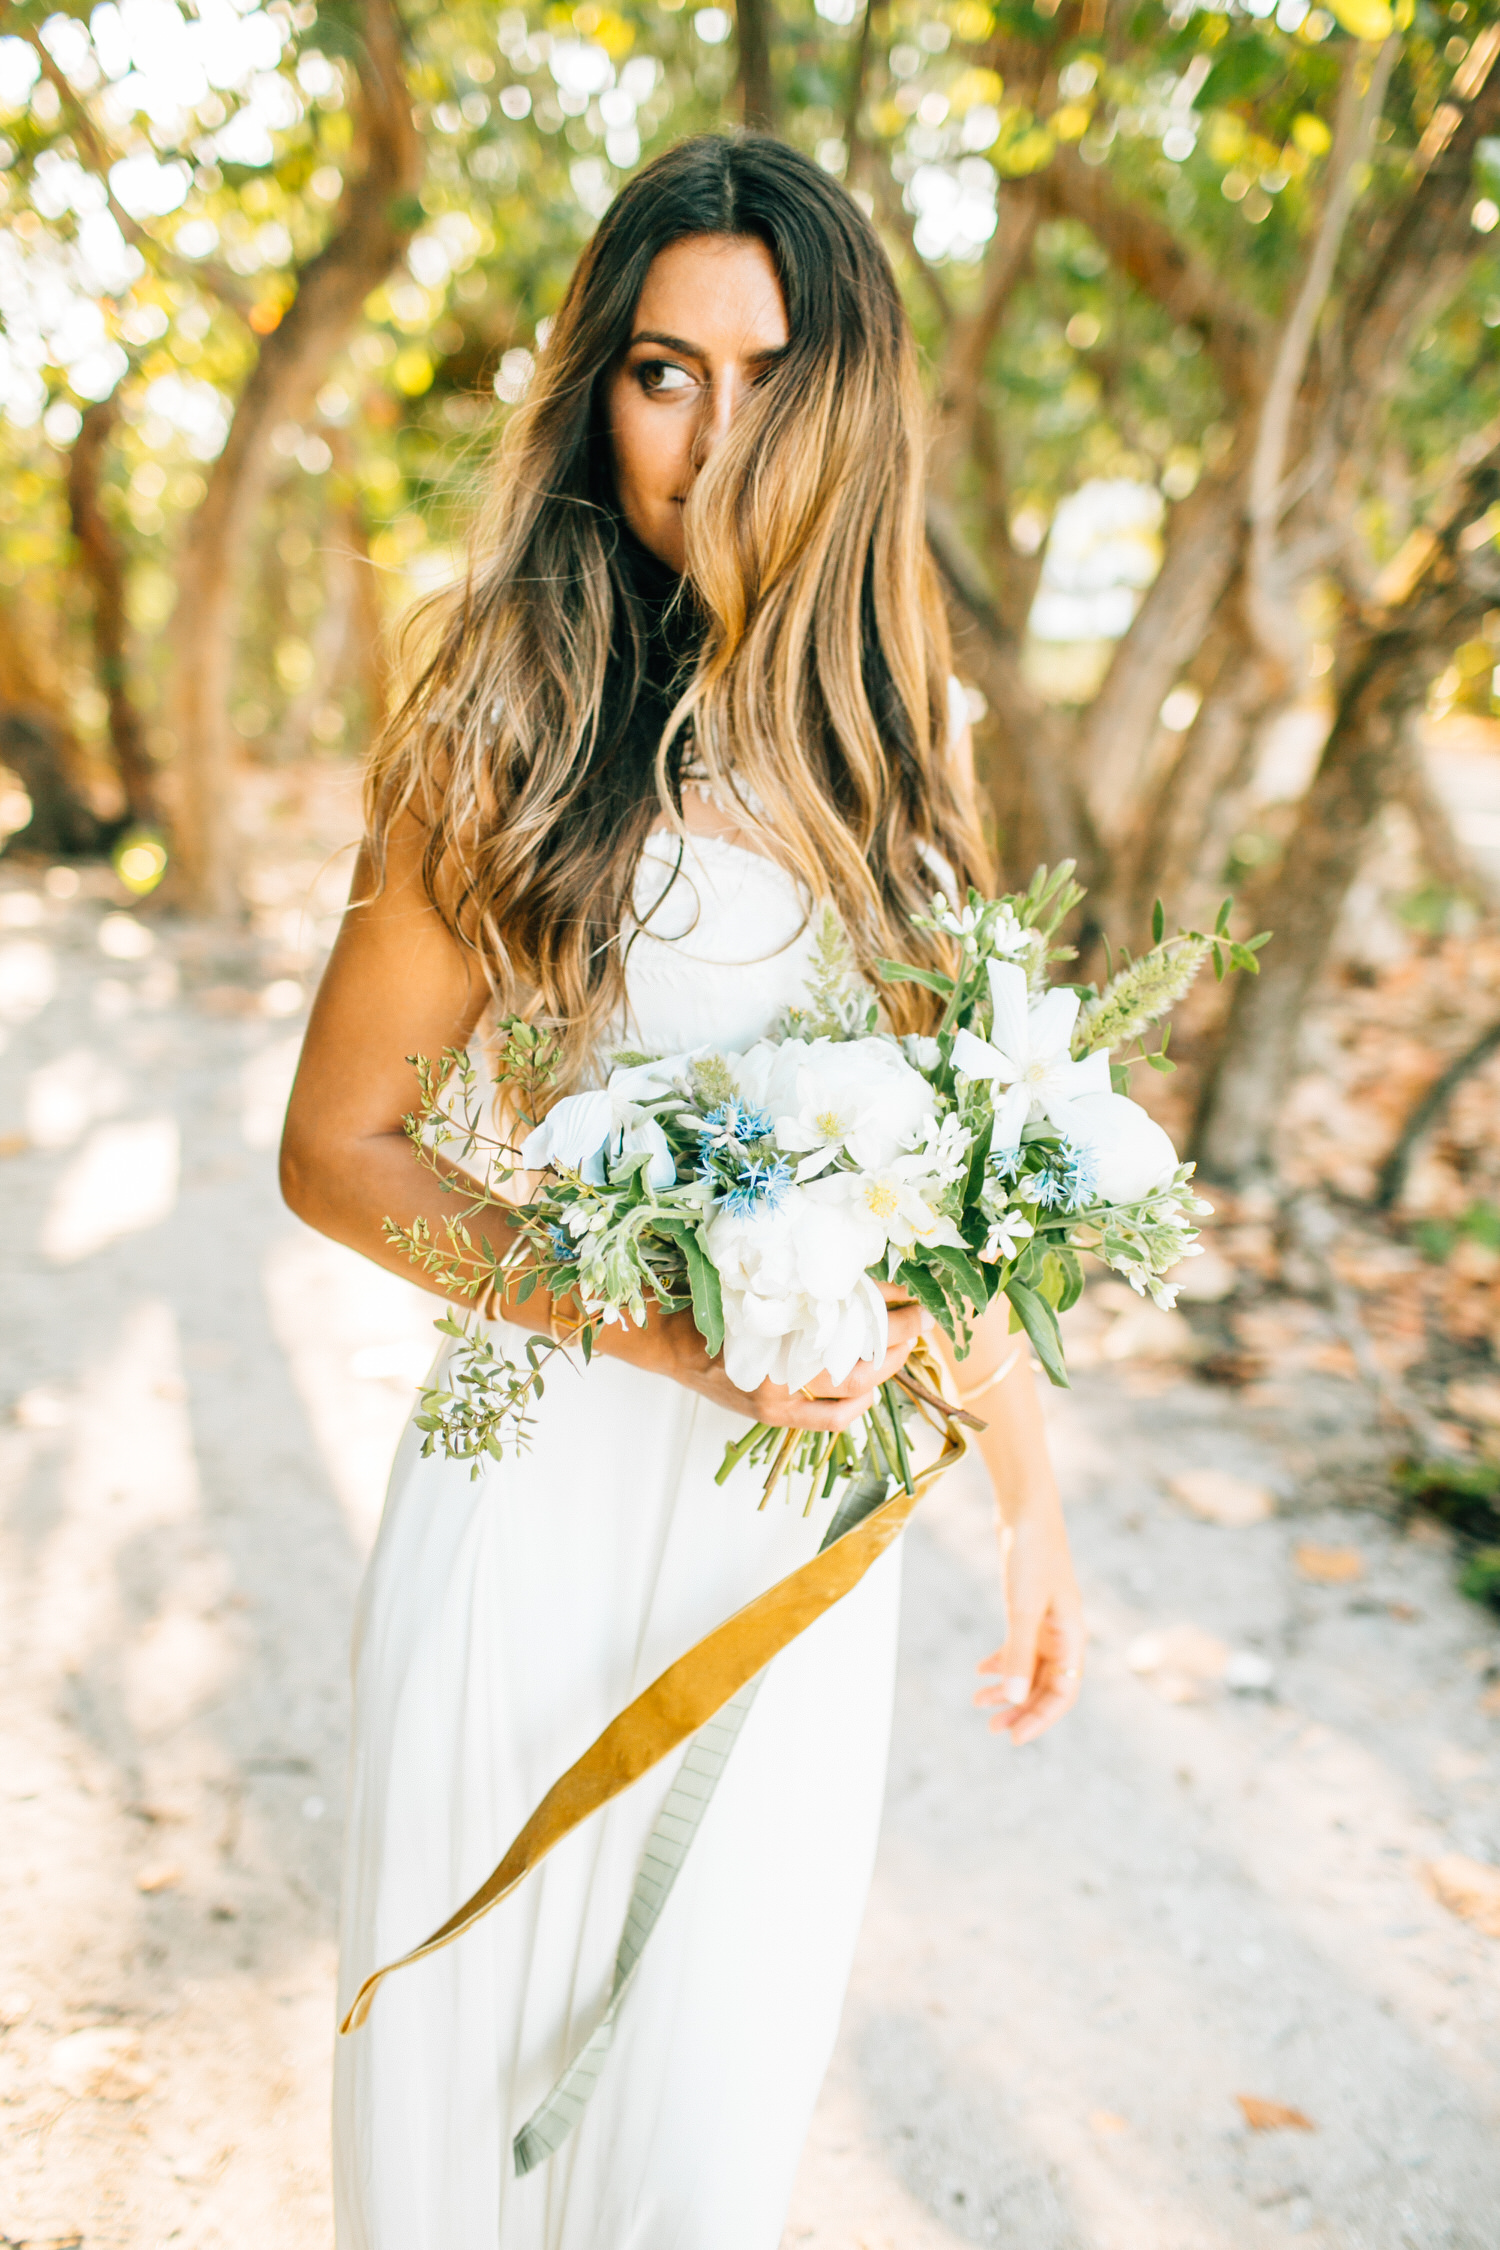 Boho Wedding Dress Florida : Bridal collaboration boho beach wedding inspiration